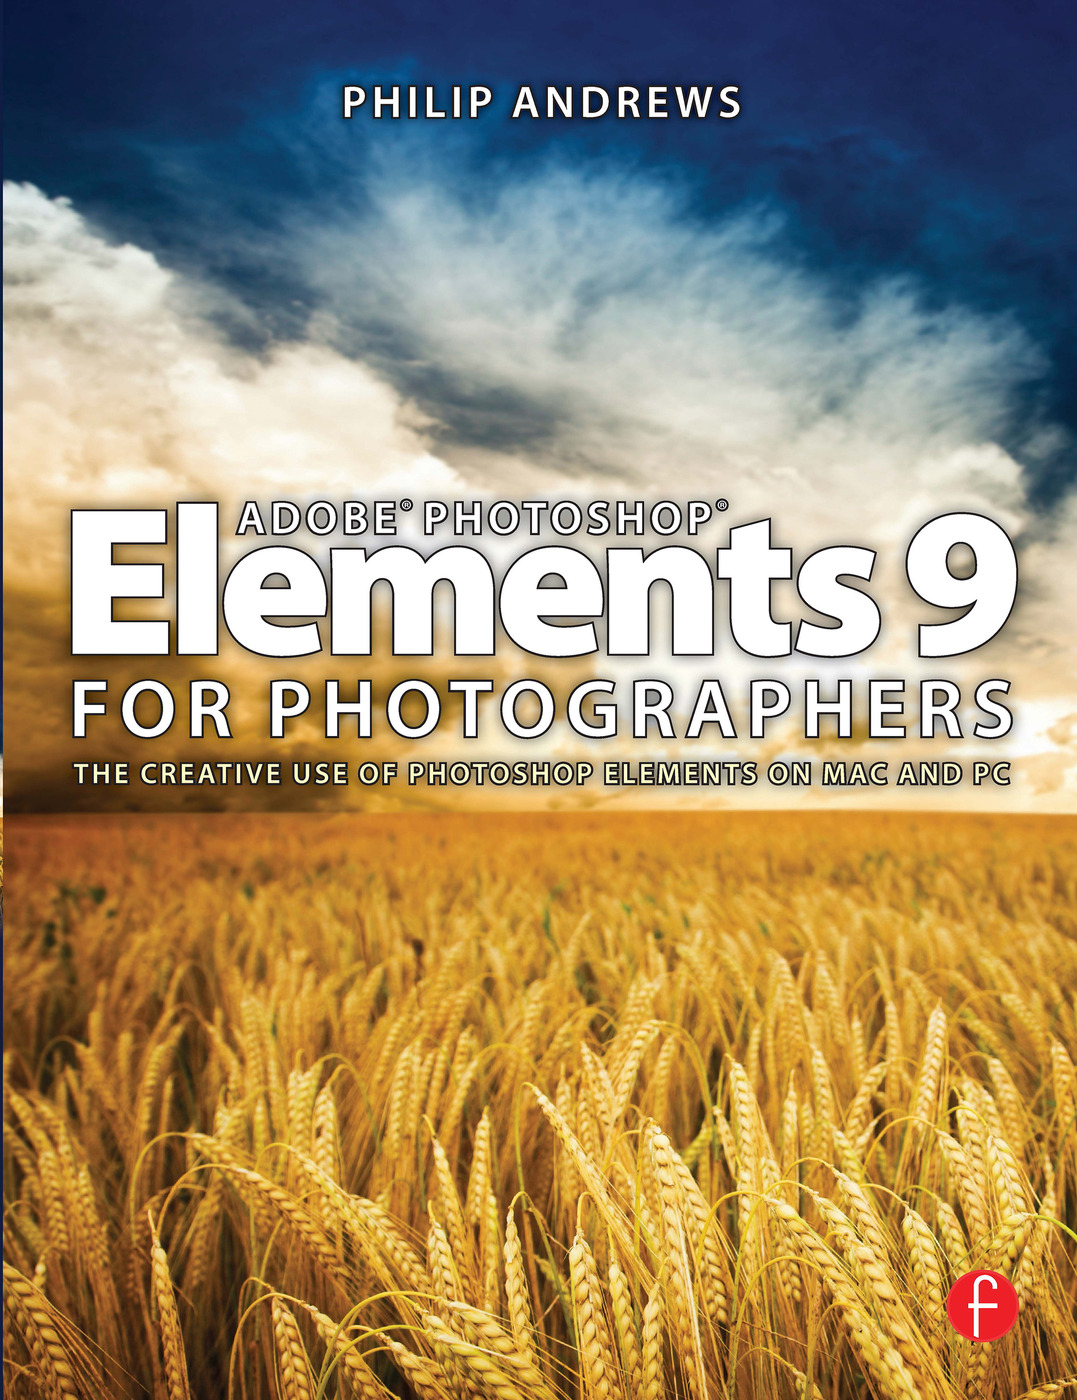 Adobe Photoshop Elements 9 for Photographers book cover